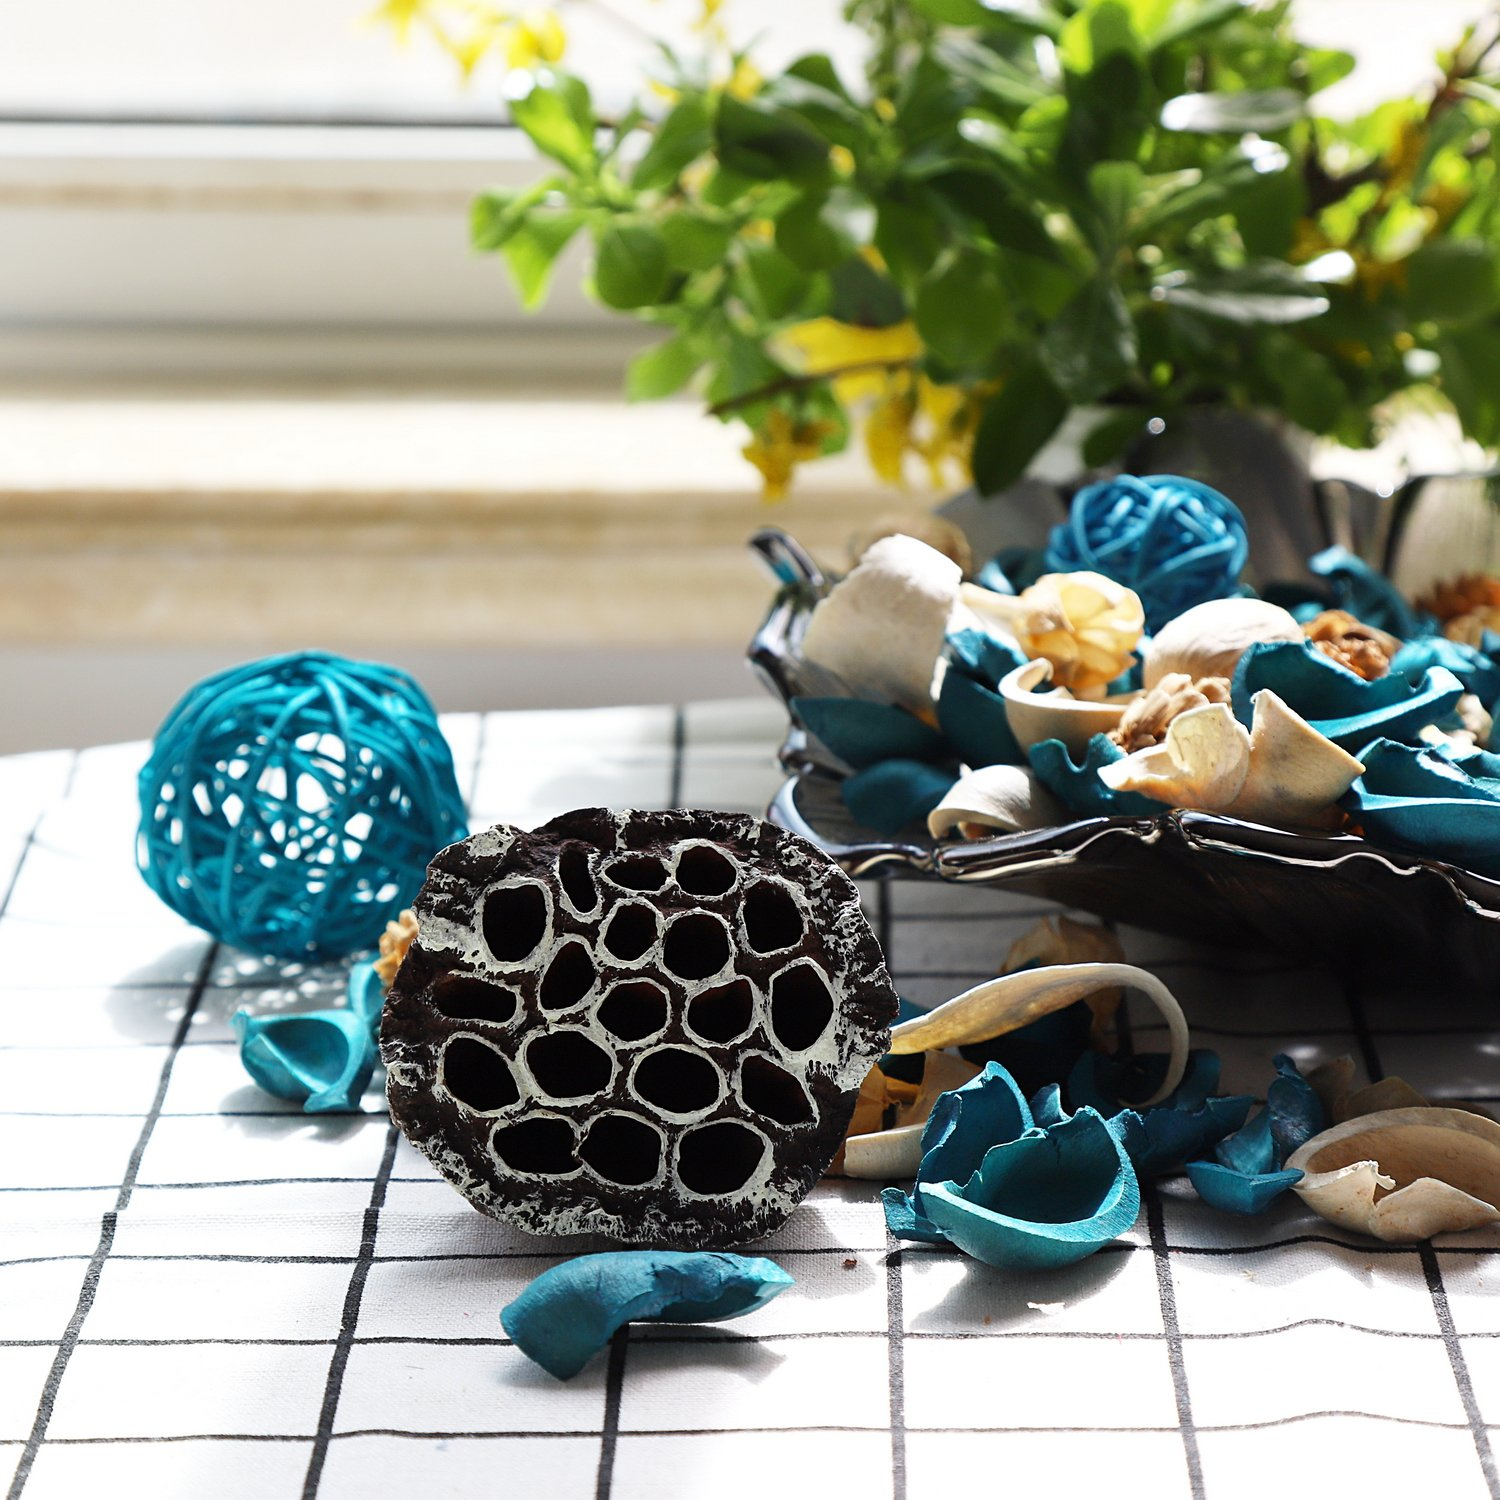 Qingbei Rina Ocean Scent Summer Potpourri Bag Decorative Perfume Sachet, Rattan Balls Lotus Pods Pine Cones Dried Flowers and Plants, 9.9 Ounce Turquoise Blue by Qingbei Rina (Image #3)